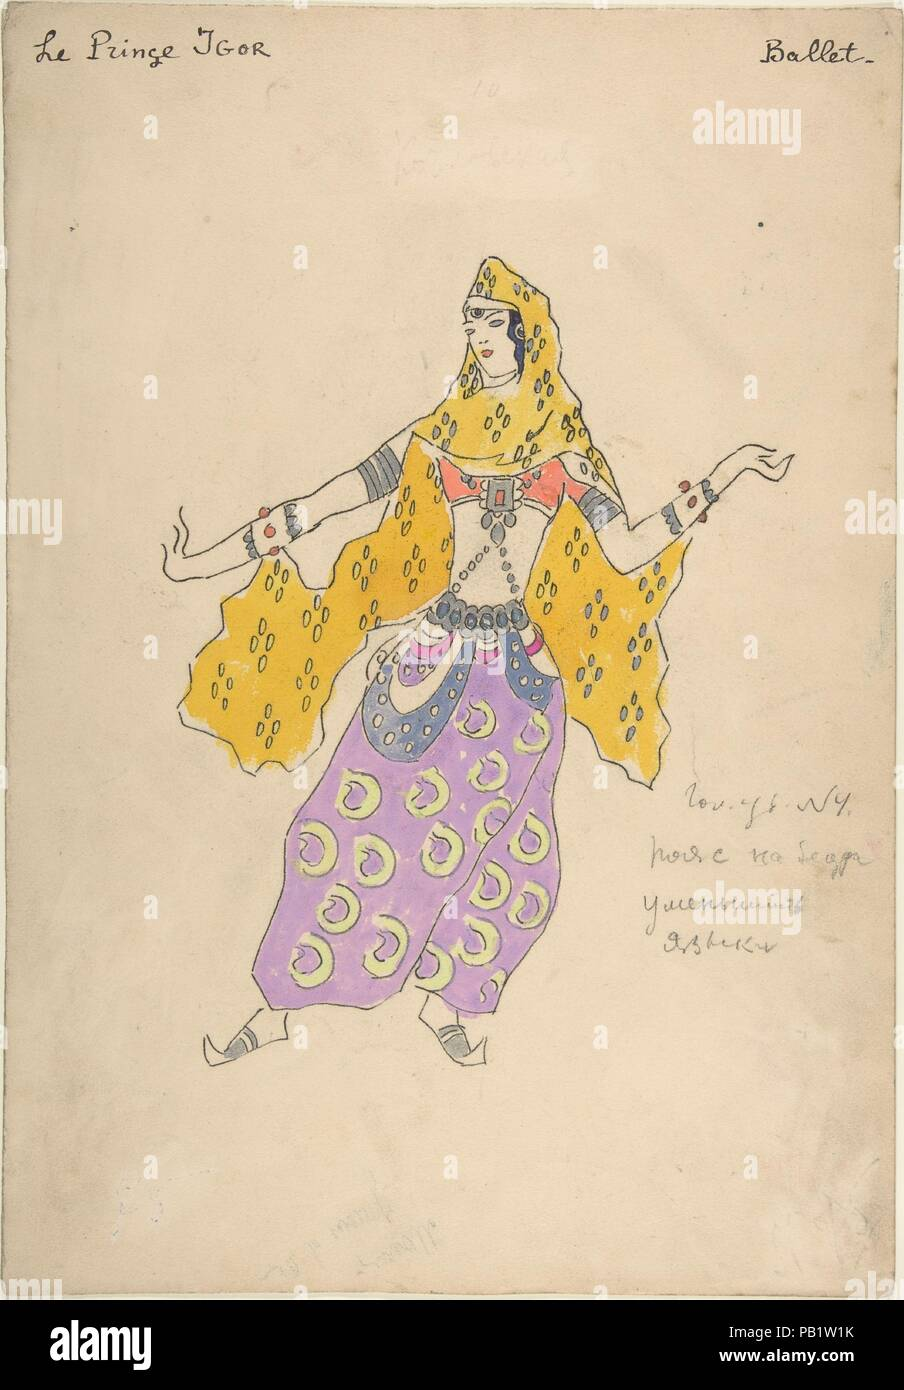 Costume design for Polovtsian girl in 'Prince Igor'. Artist: Konstantin Korovin (Russian, Moscow 1861-1939 Paris). Dimensions: sheet: 15 1/4 x 10 9/16 in. (38.7 x 26.8 cm). Date: 1909.  Costume design for Polovtsian girl in 'Prince Igor'. She stands with her weight on her left hip and arms extended to the sides, wearing a short-sleeved, orange crop top, wide-legged purple pants with green loops, and an orange scarf with lozenges of four purple dots tied around her head and hanging behind her back. Gray cuffs wrap her upper arms, and the forearms are wrapped by white cuffs with silver borders a - Stock Image